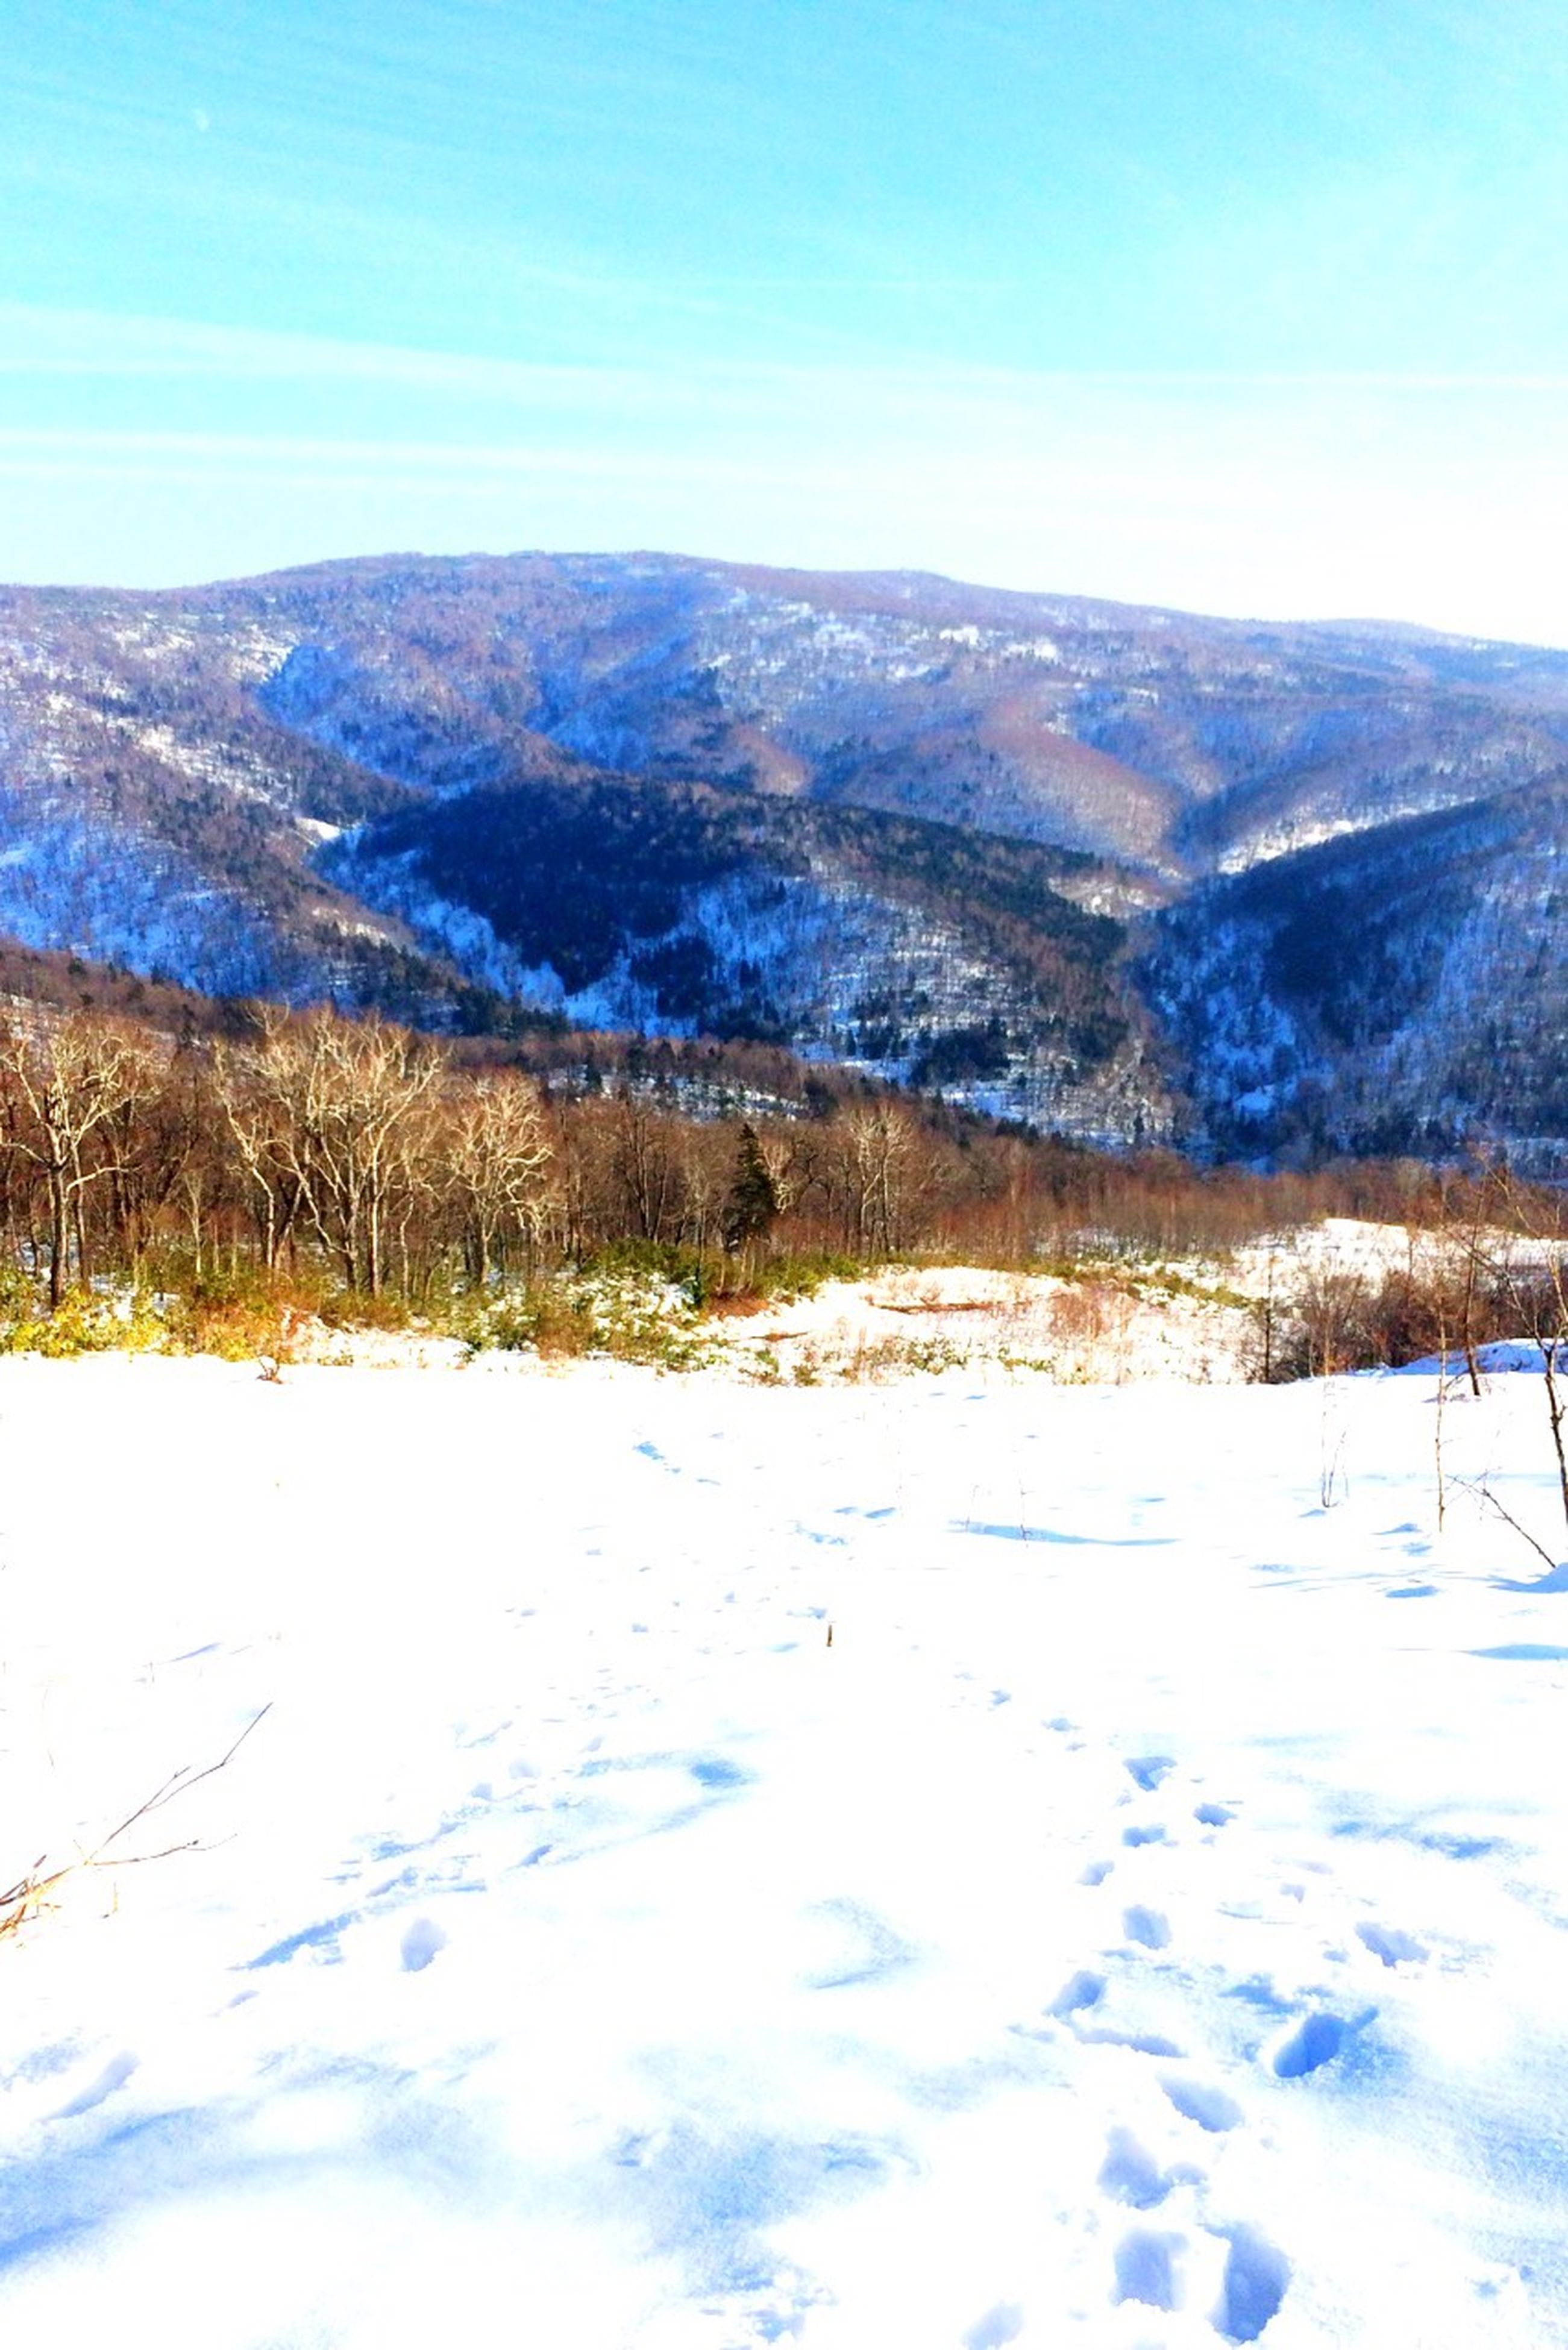 snow, mountain, winter, cold temperature, tranquil scene, landscape, tranquility, mountain range, scenics, beauty in nature, season, nature, clear sky, non-urban scene, sky, covering, field, blue, snowcapped mountain, weather